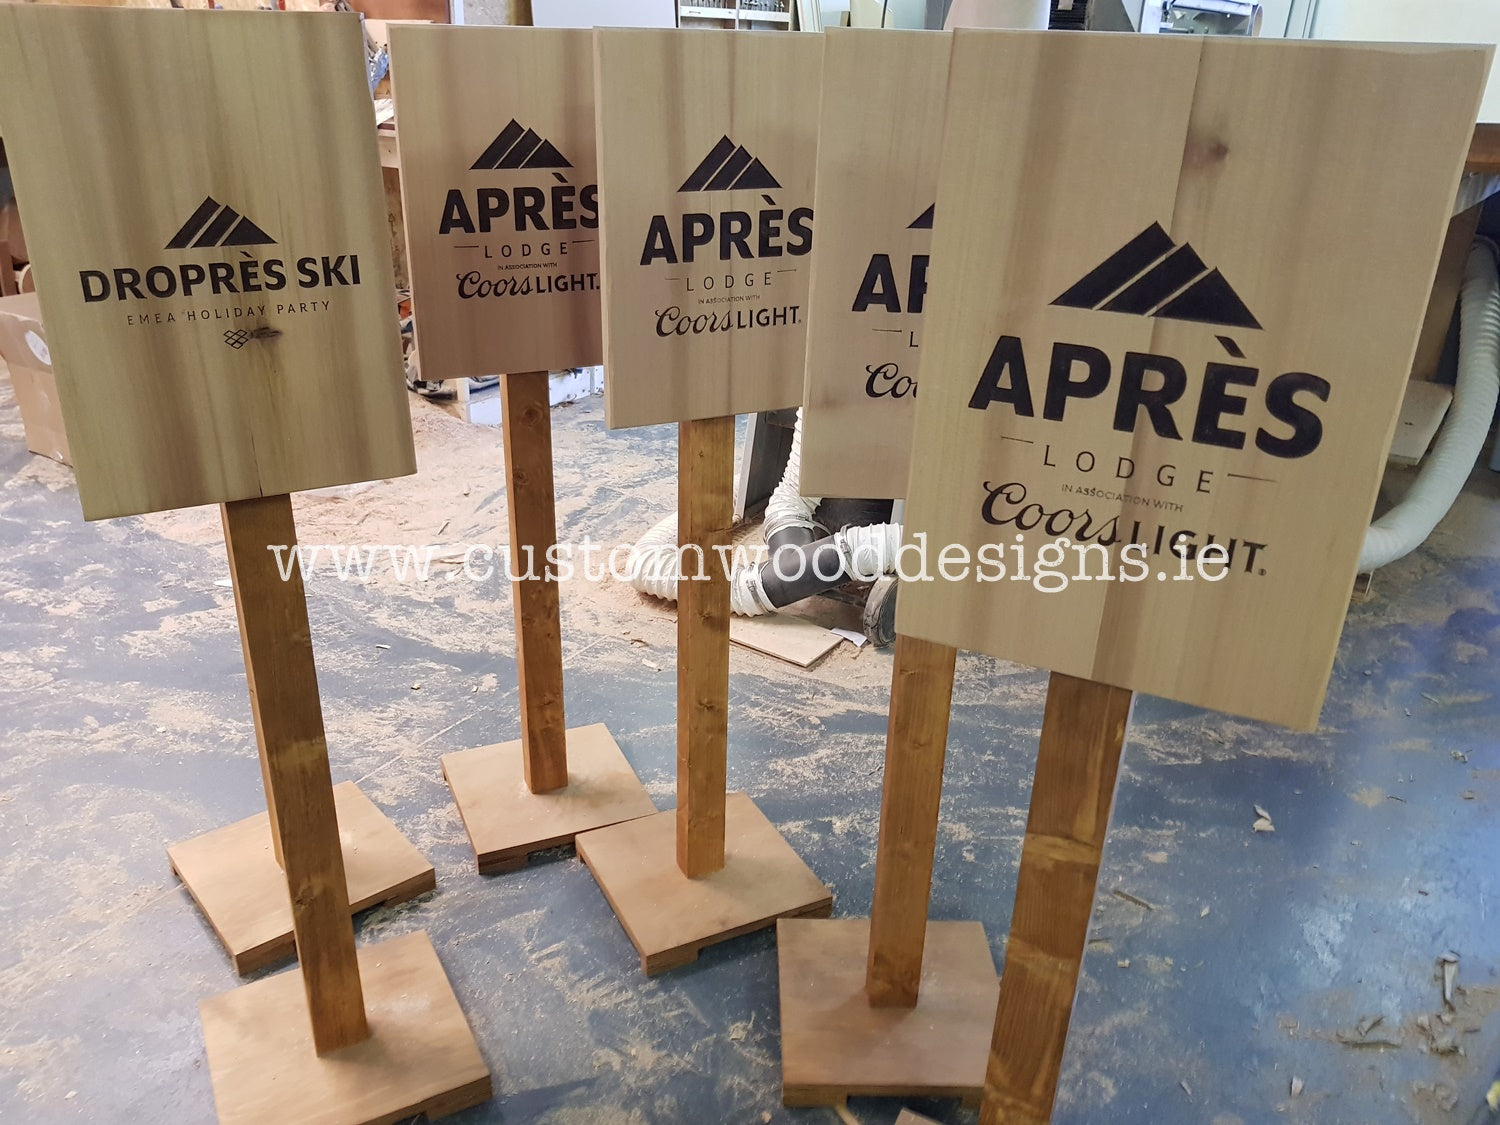 Apres Logo Cuistom Wood Designs branding company wood branding dublin ireland engraveing cnc specialists online Apres event signs timber signs wood signs ireland (1)